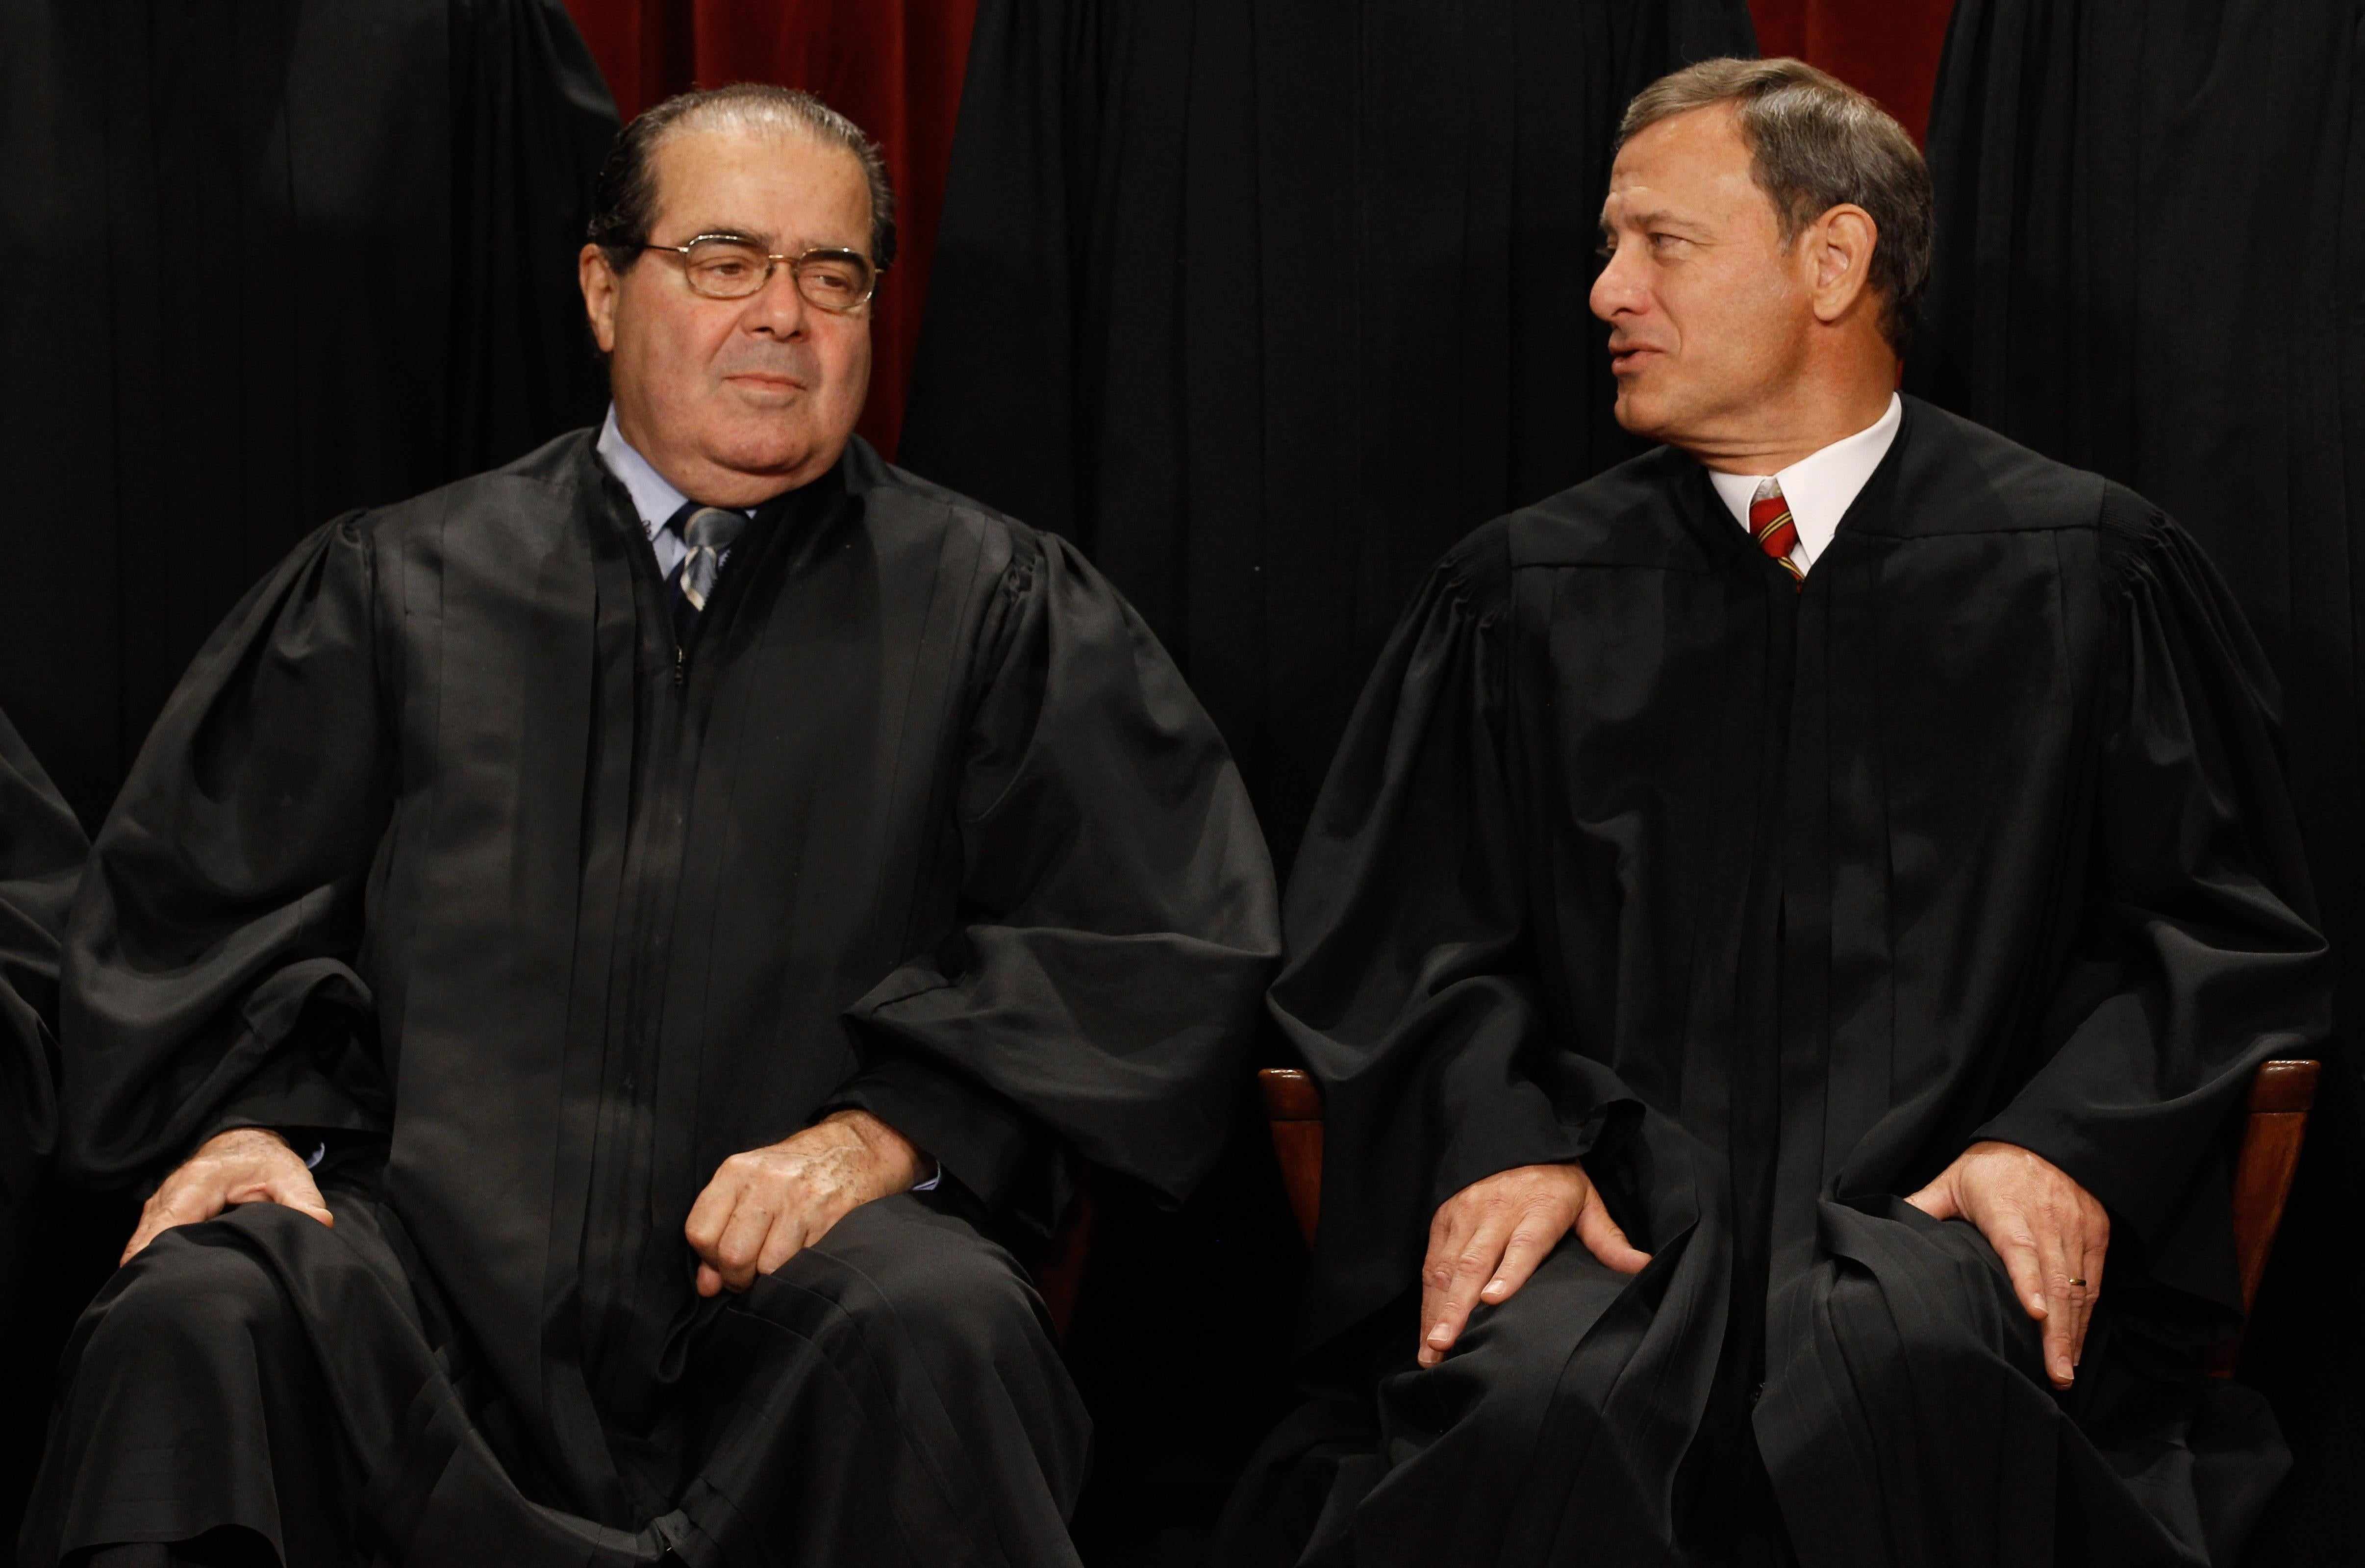 Justice Antonin Scalia (left; shown here with Chief Justice John Roberts) had pointed exchanges with Solicitor General Donald Verrilli during Tuesday's arguments regarding the Affordable Care Act's individual mandate